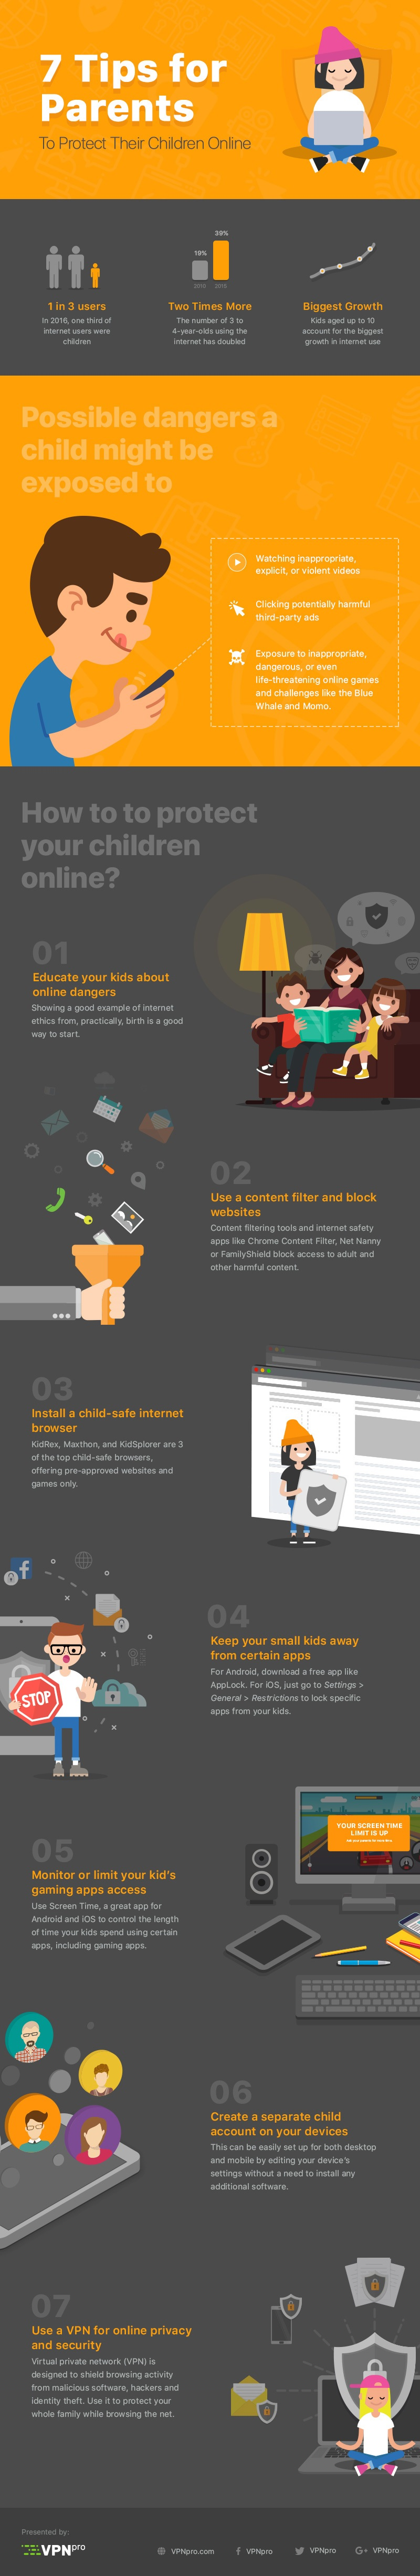 Internet Safety For Kids: 7 Tips For Parents Infographic